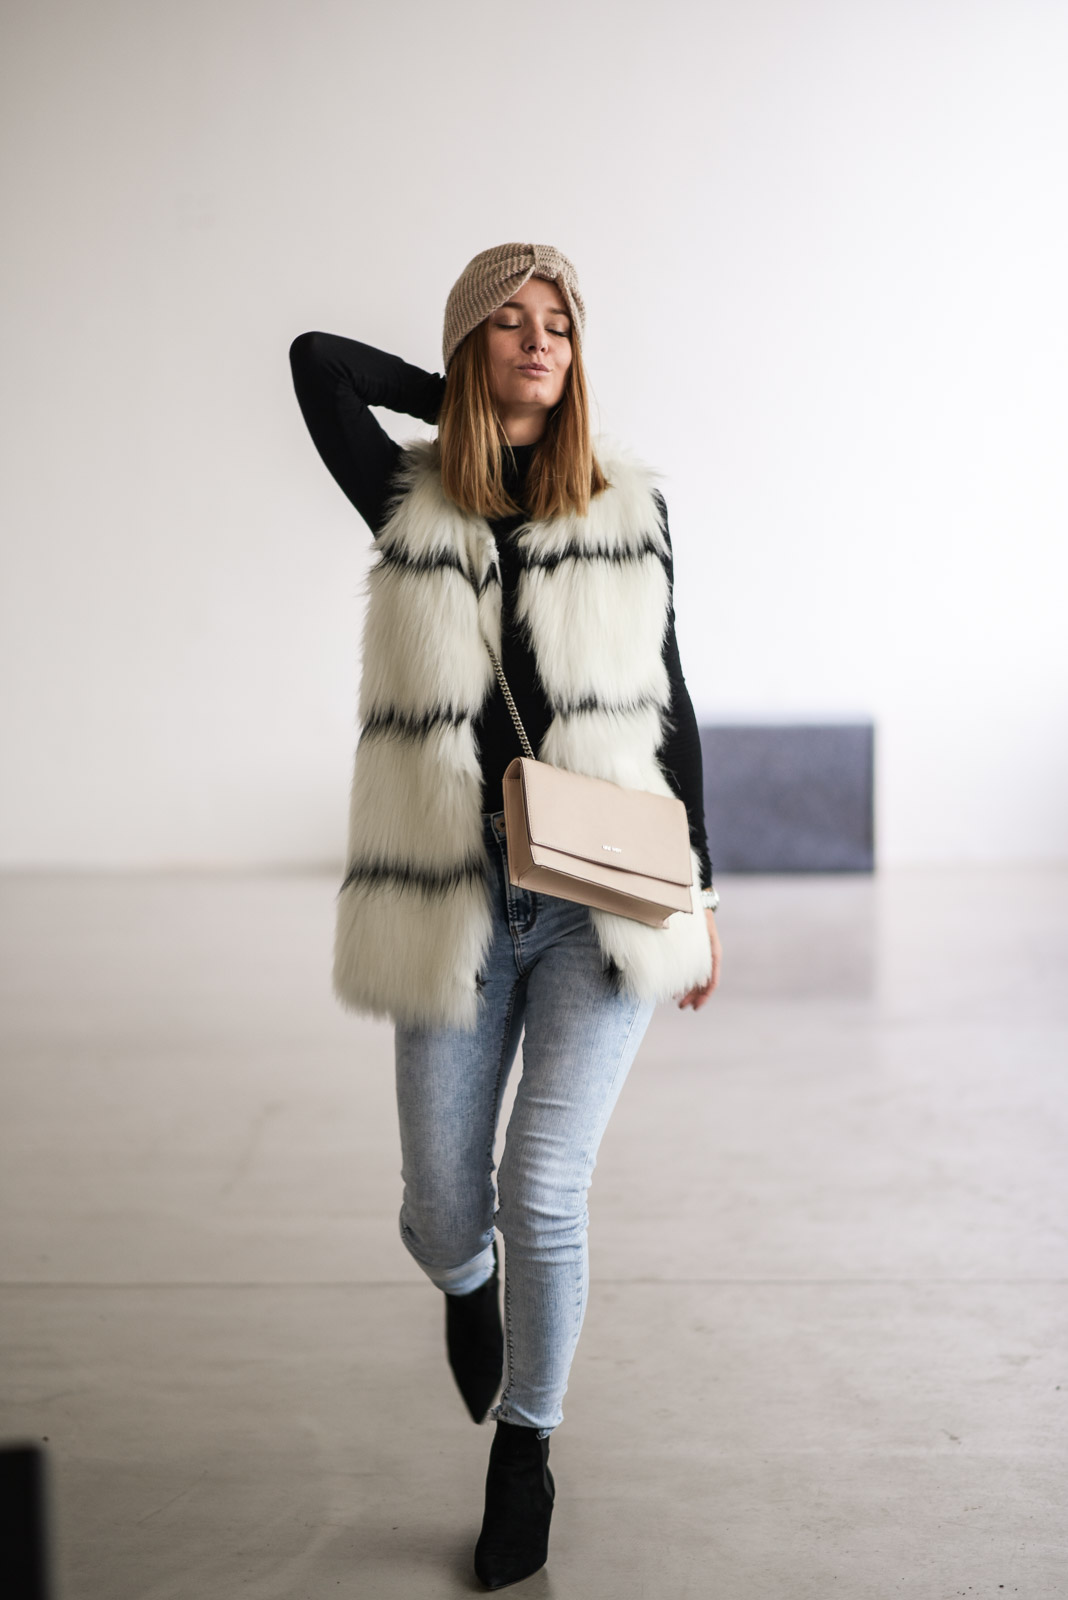 happy girl wearing fur vest walking and singing